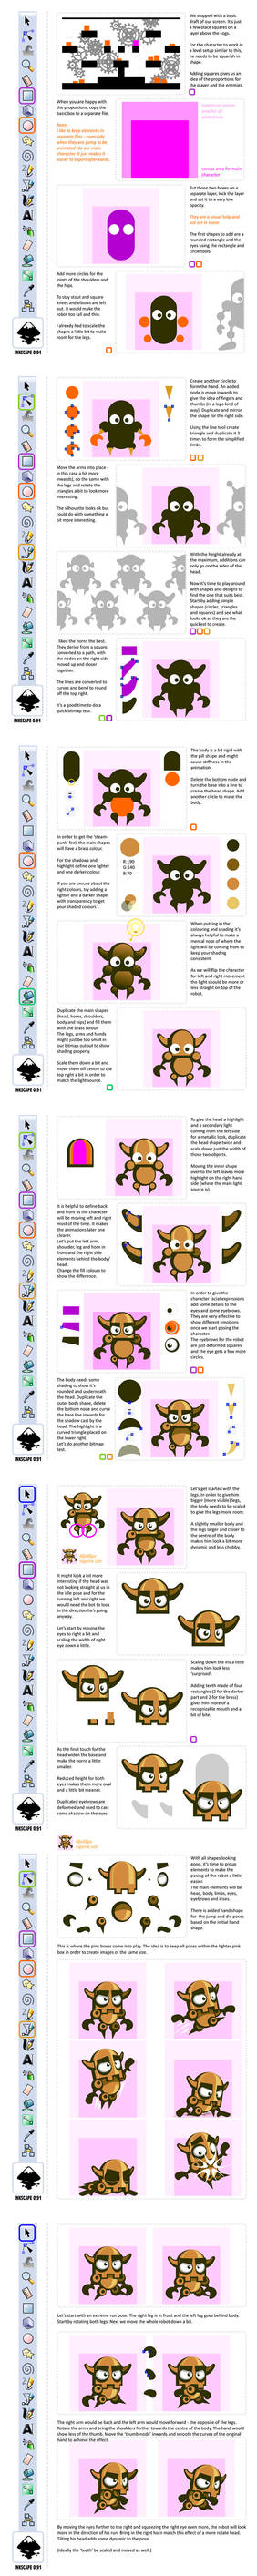 2D game character creation in inkscape tutorial